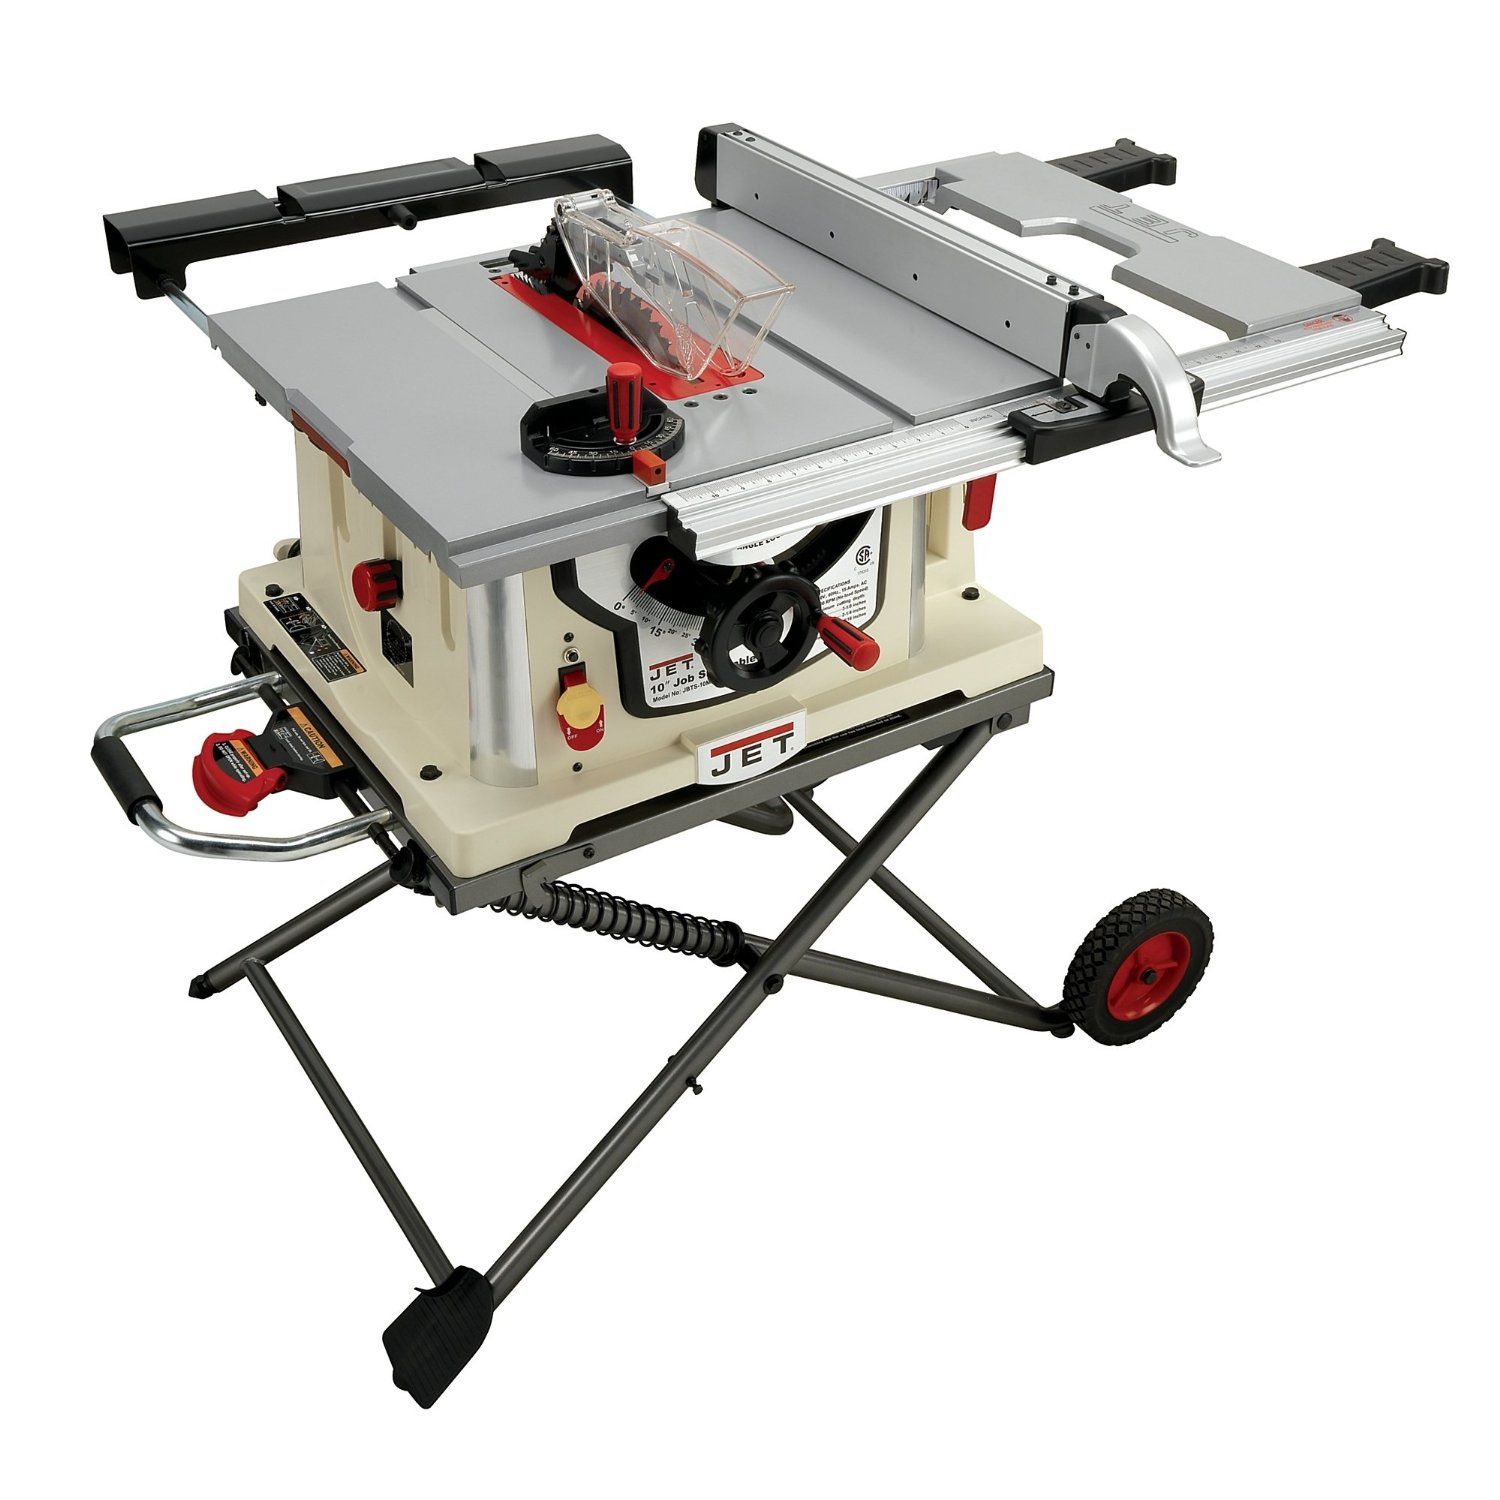 Jet jbts 10mjs review table saw central for 10 table saws